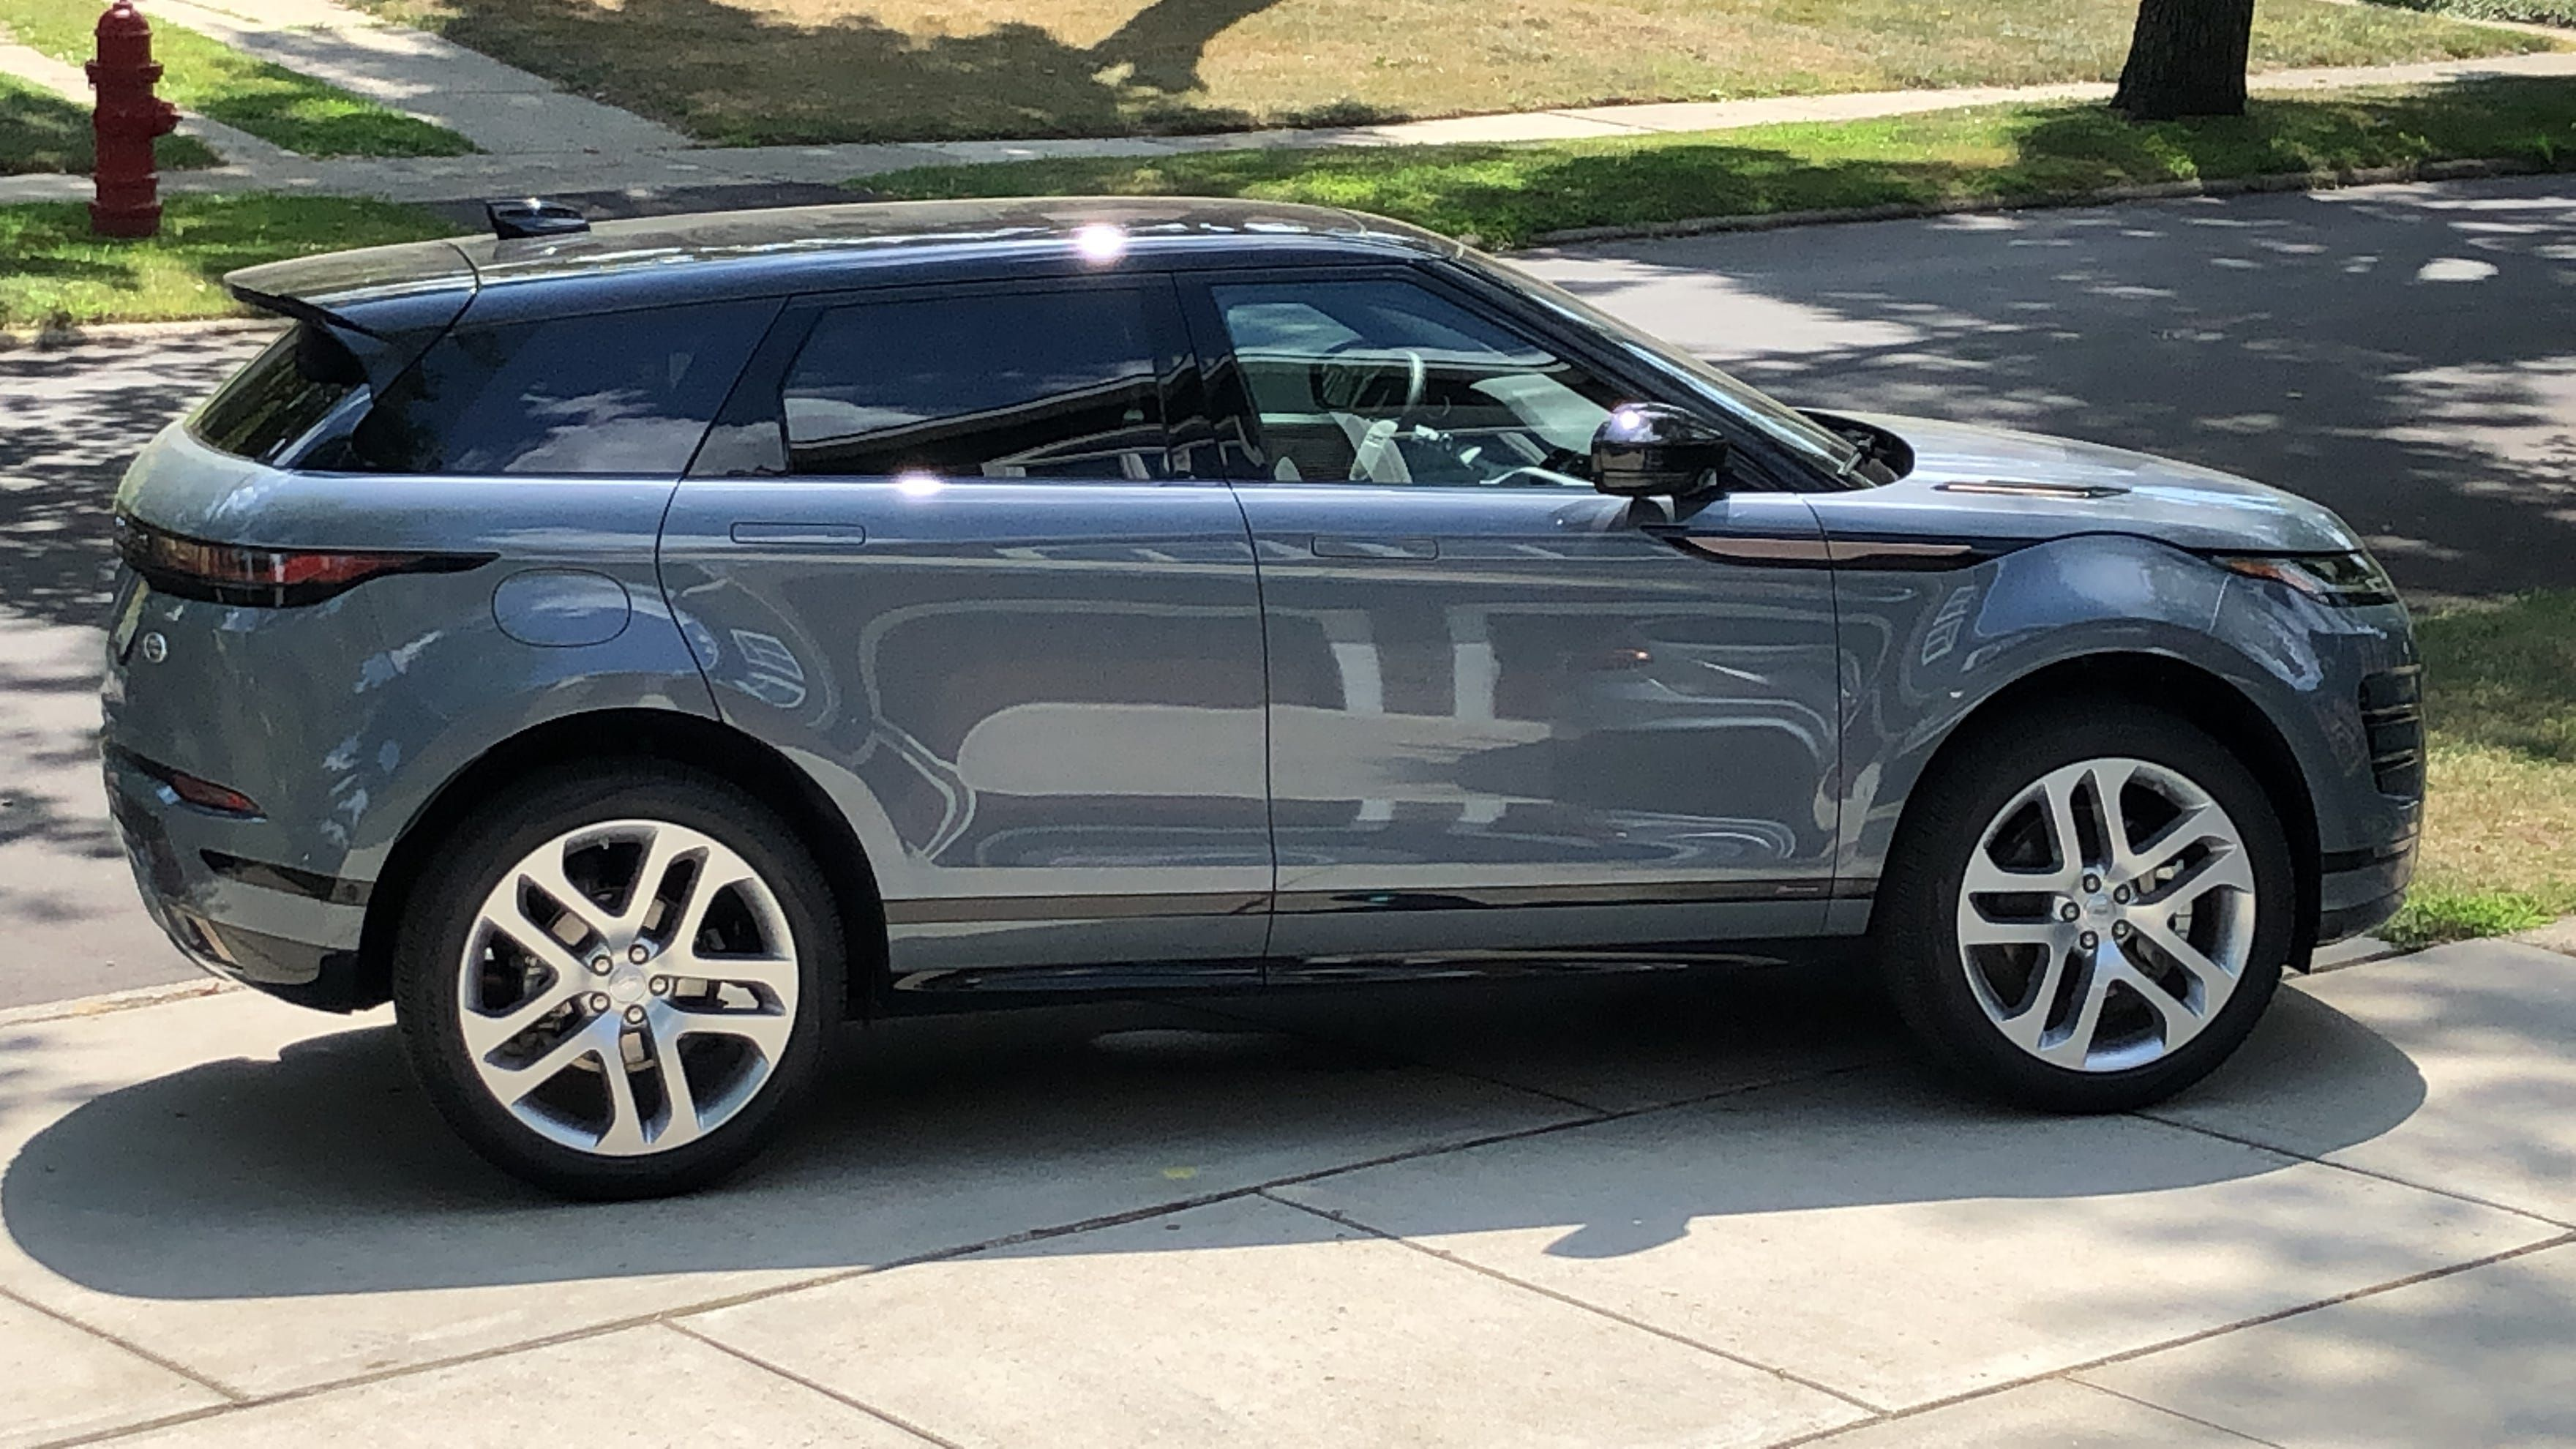 Pricey 2020 Range Rover Evoque Suv Nails The Look And Feel But Has Maddening Oversight Range Rover Evoque Range Rover Dream Cars Range Rovers